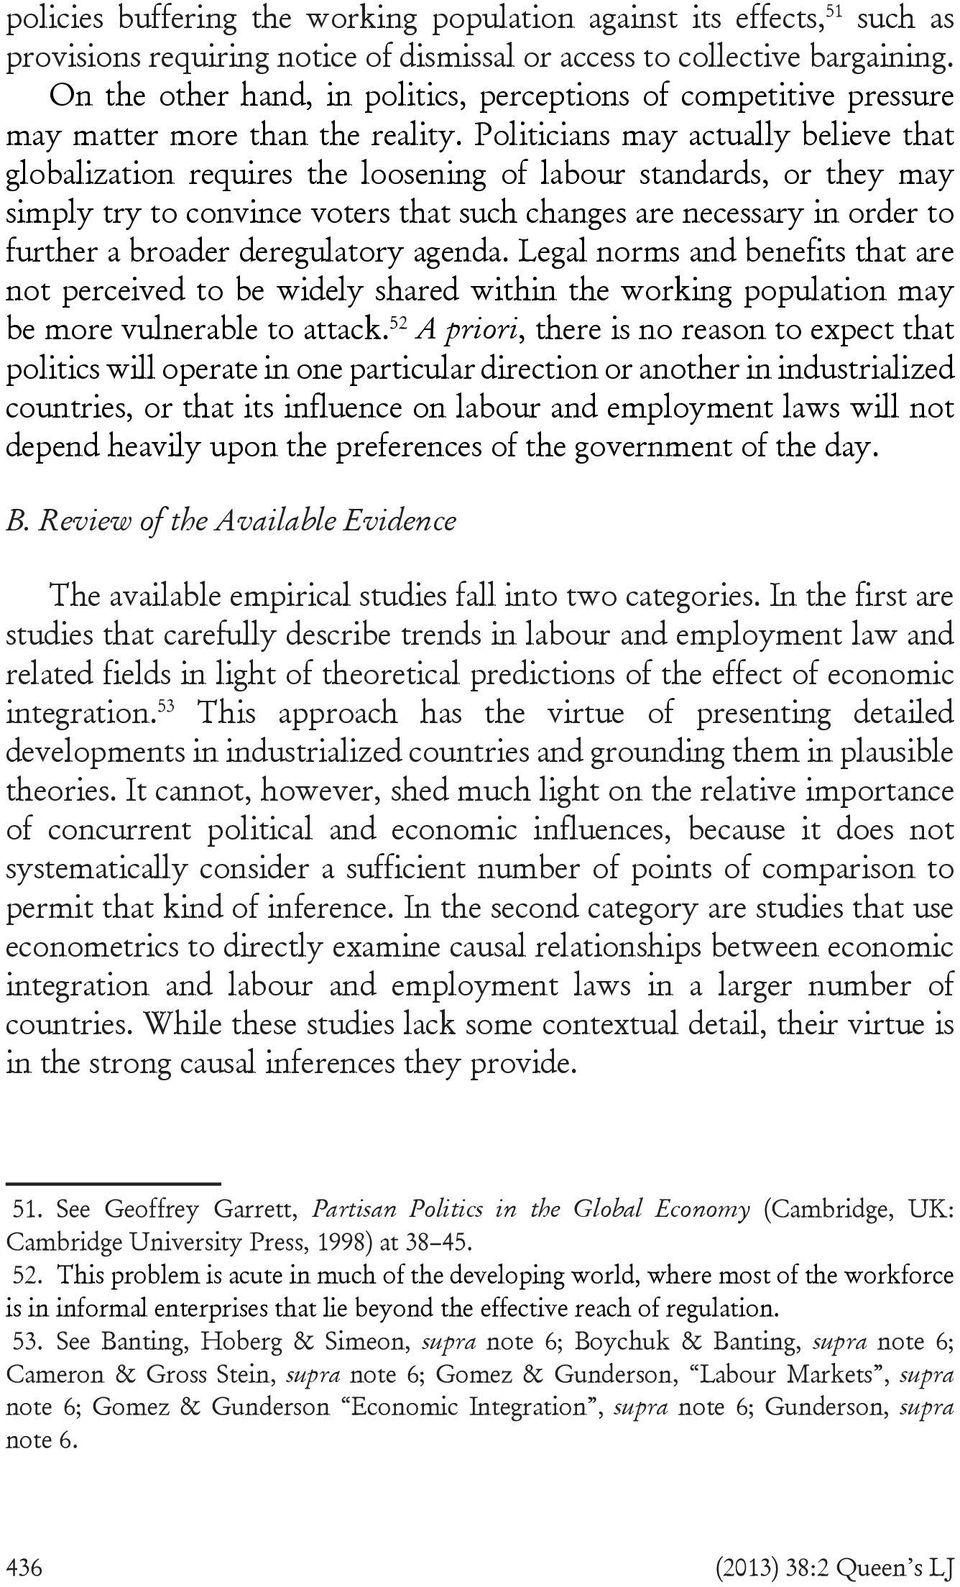 Politicians may actually believe that globalization requires the loosening of labour standards, or they may simply try to convince voters that such changes are necessary in order to further a broader